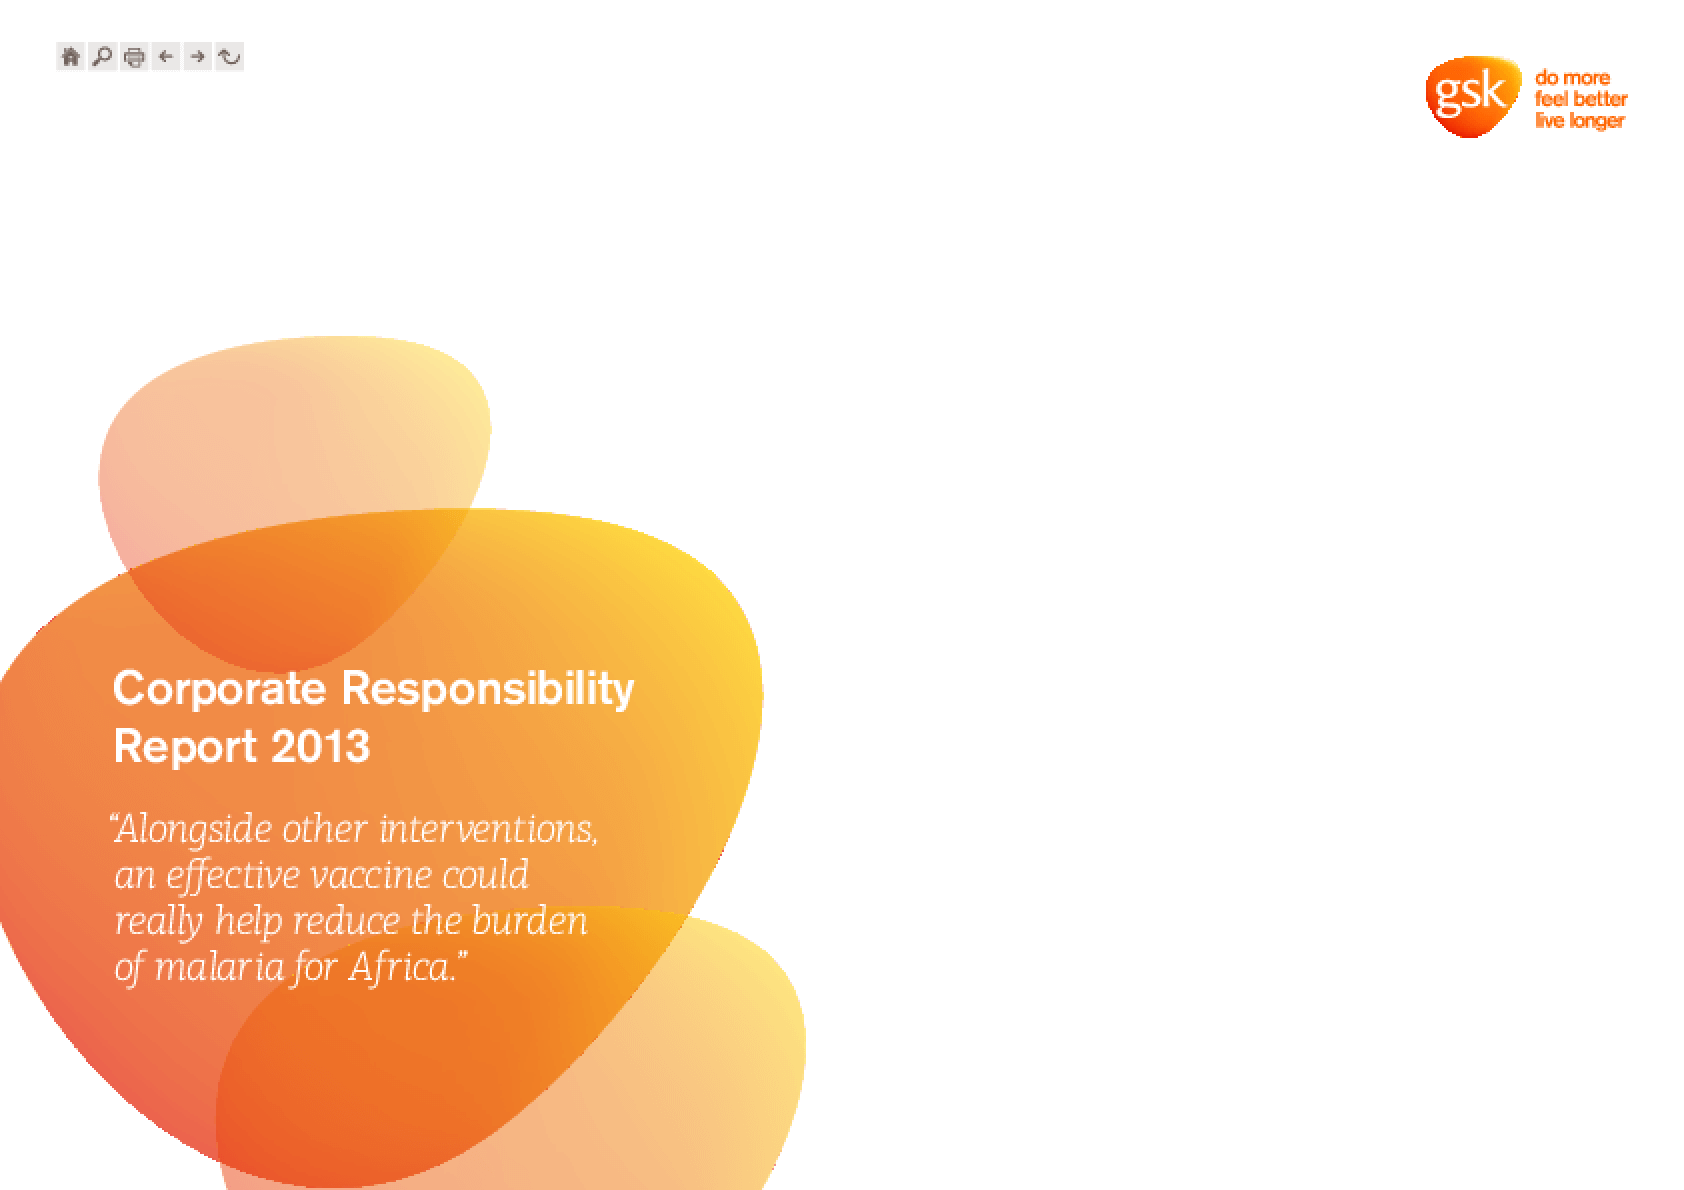 GSK Corporate Responsibility Report 2013